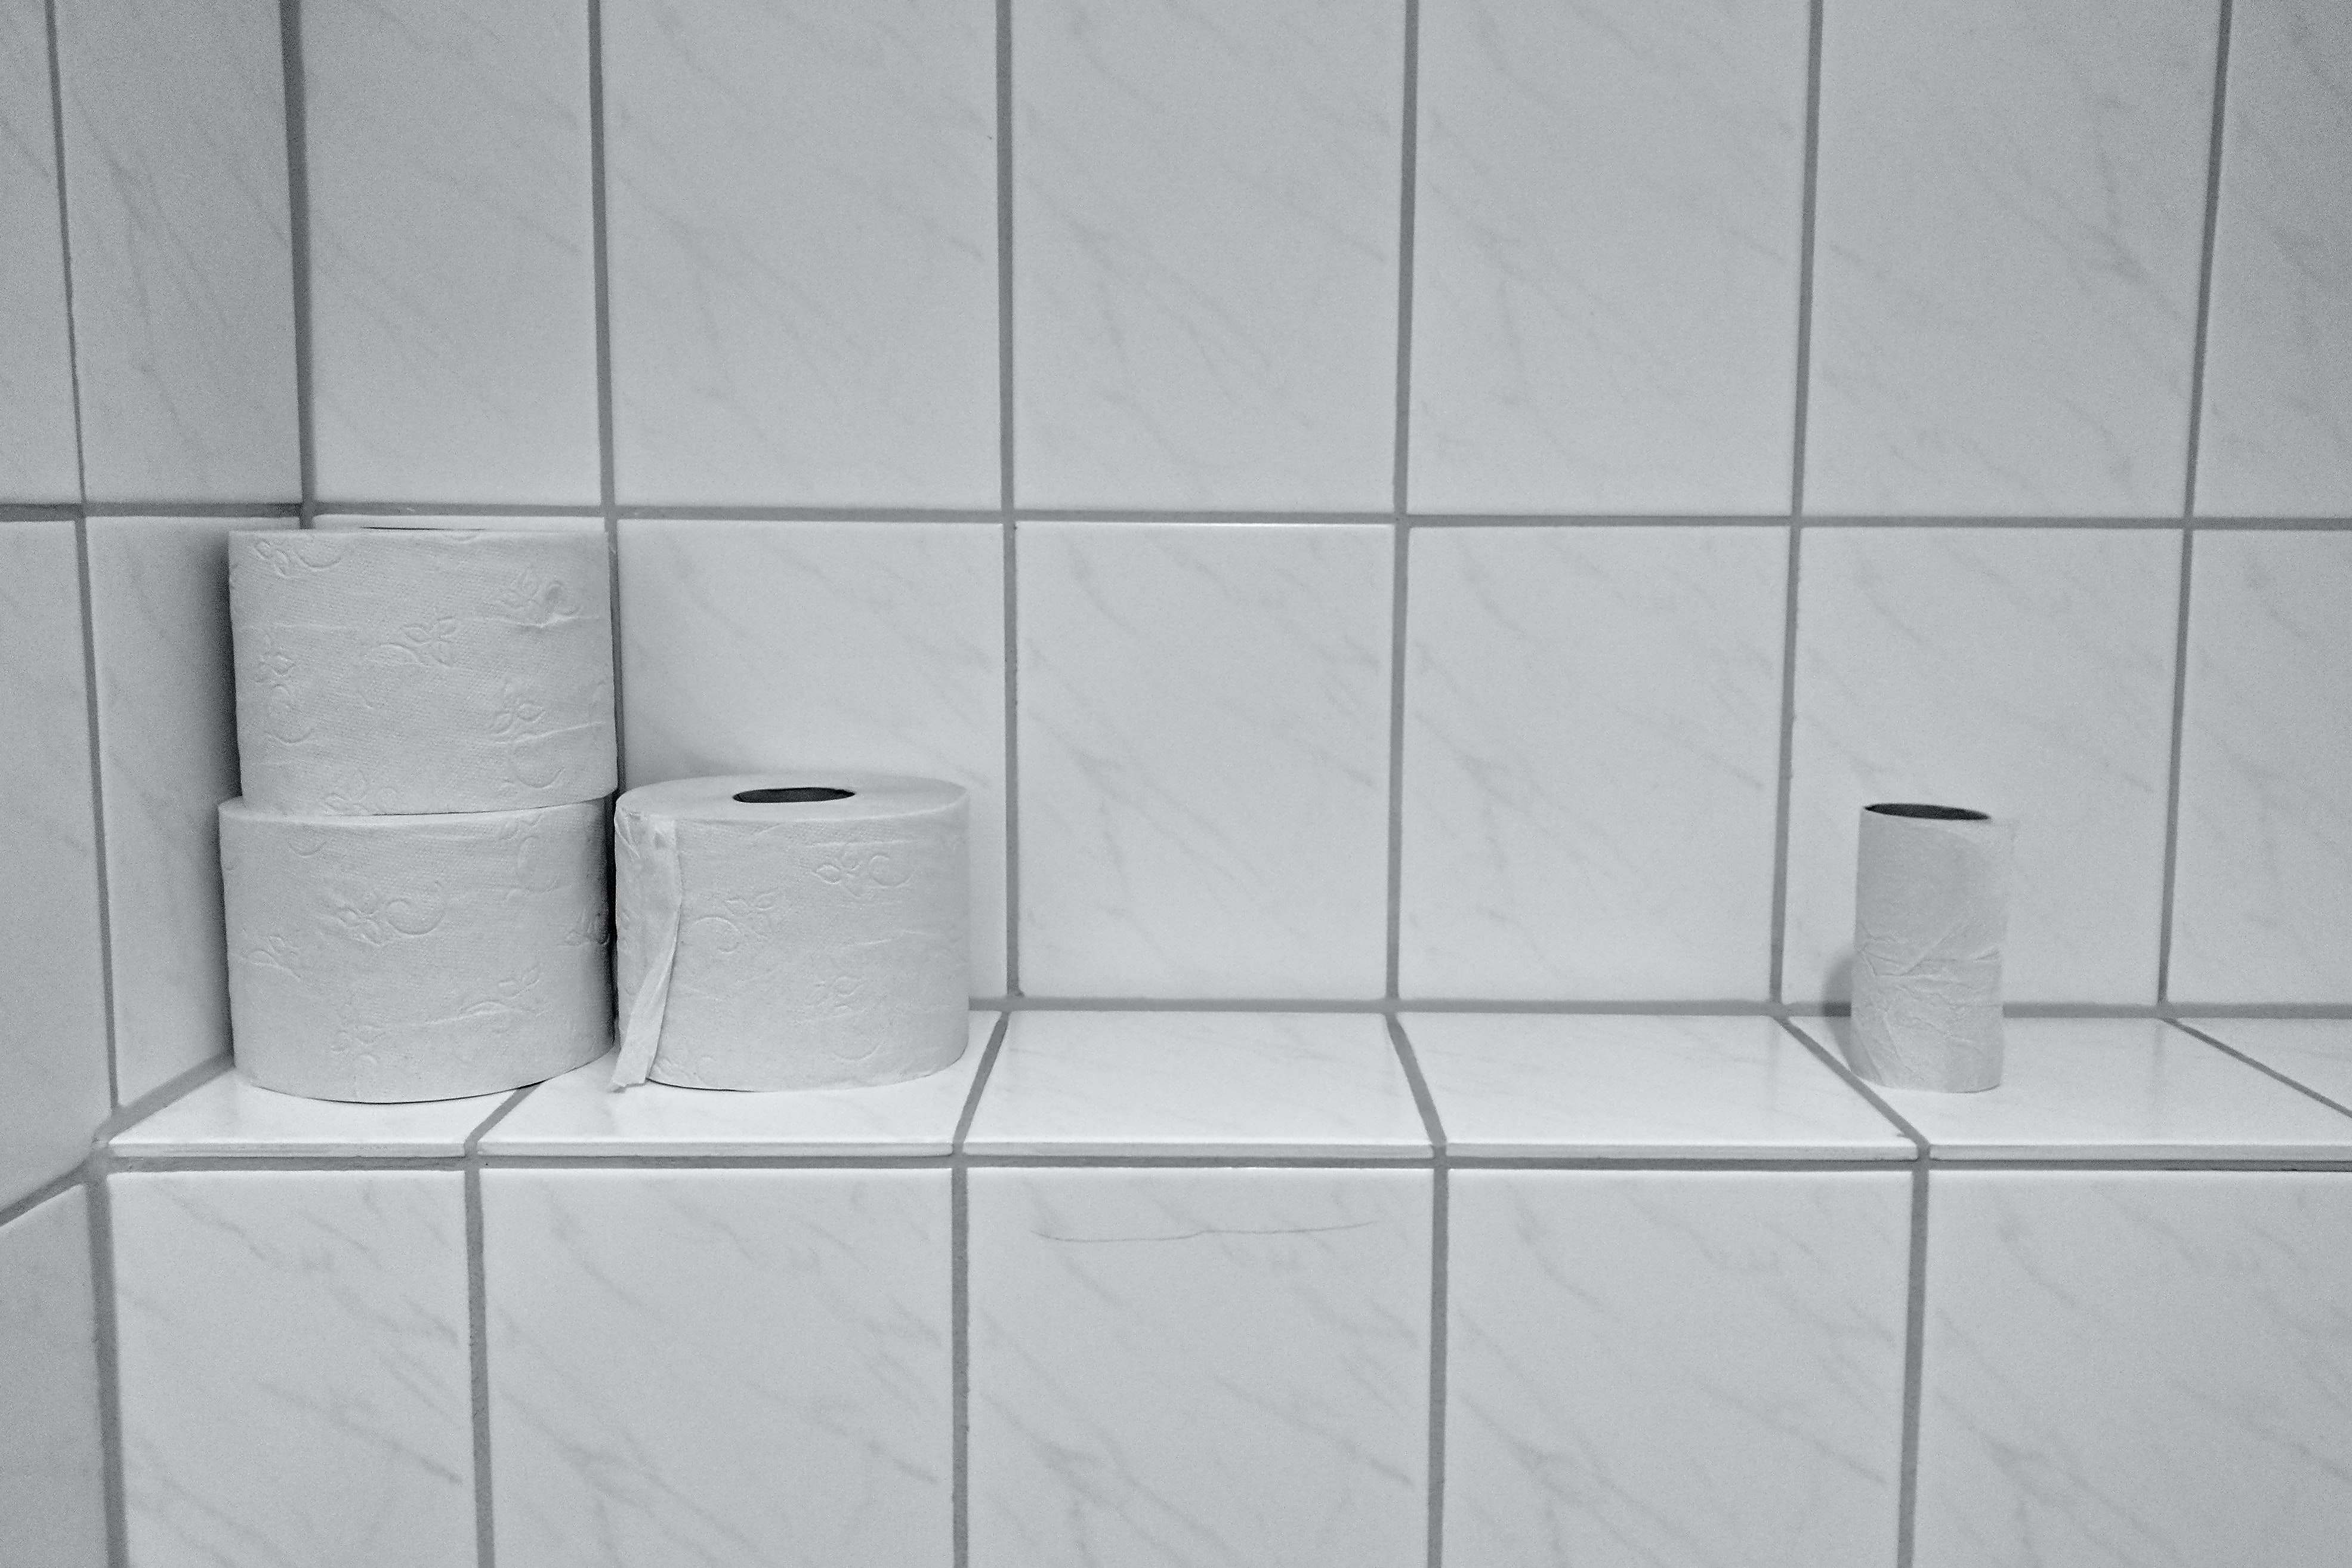 three toilet papers